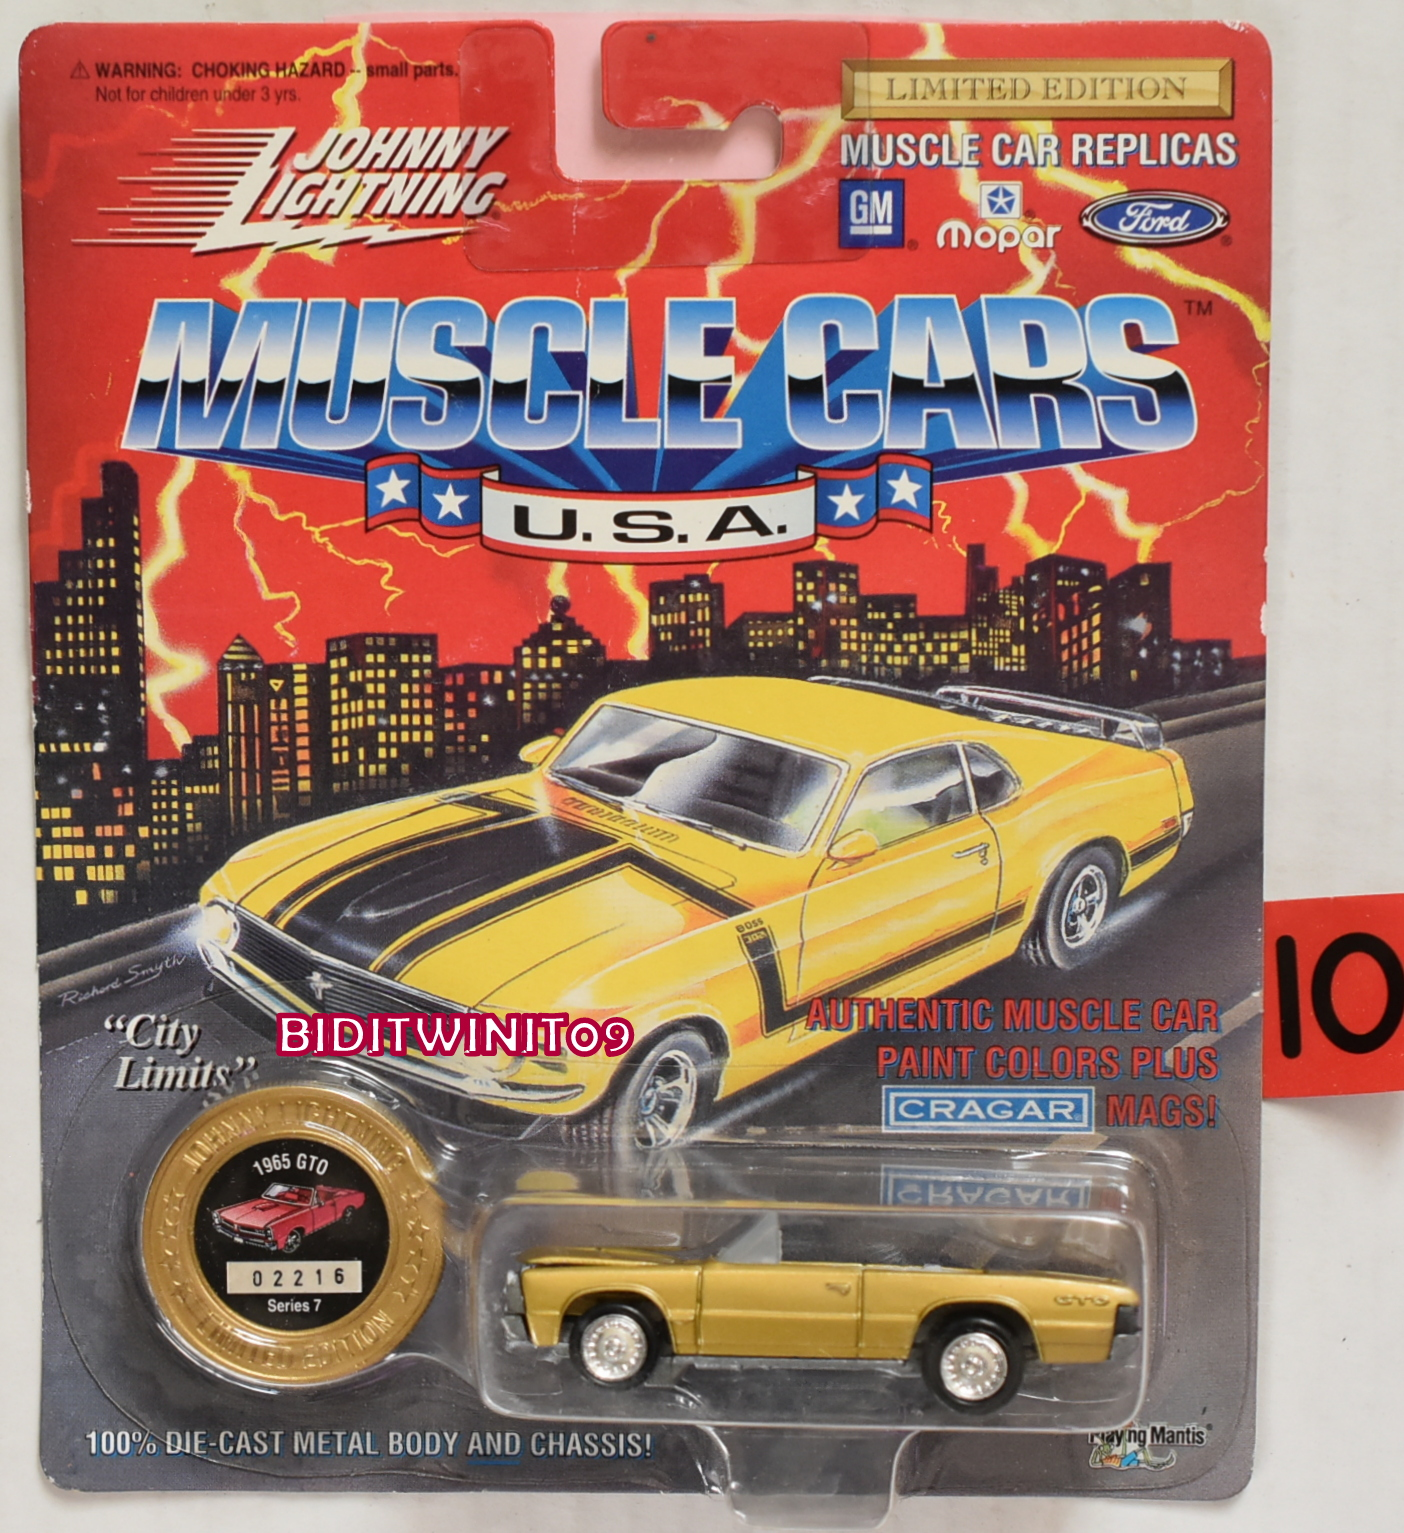 1994 JOHNNY LIGHTNING MUSCLE CARS 1965 GTO SERIES 7 YELLOW